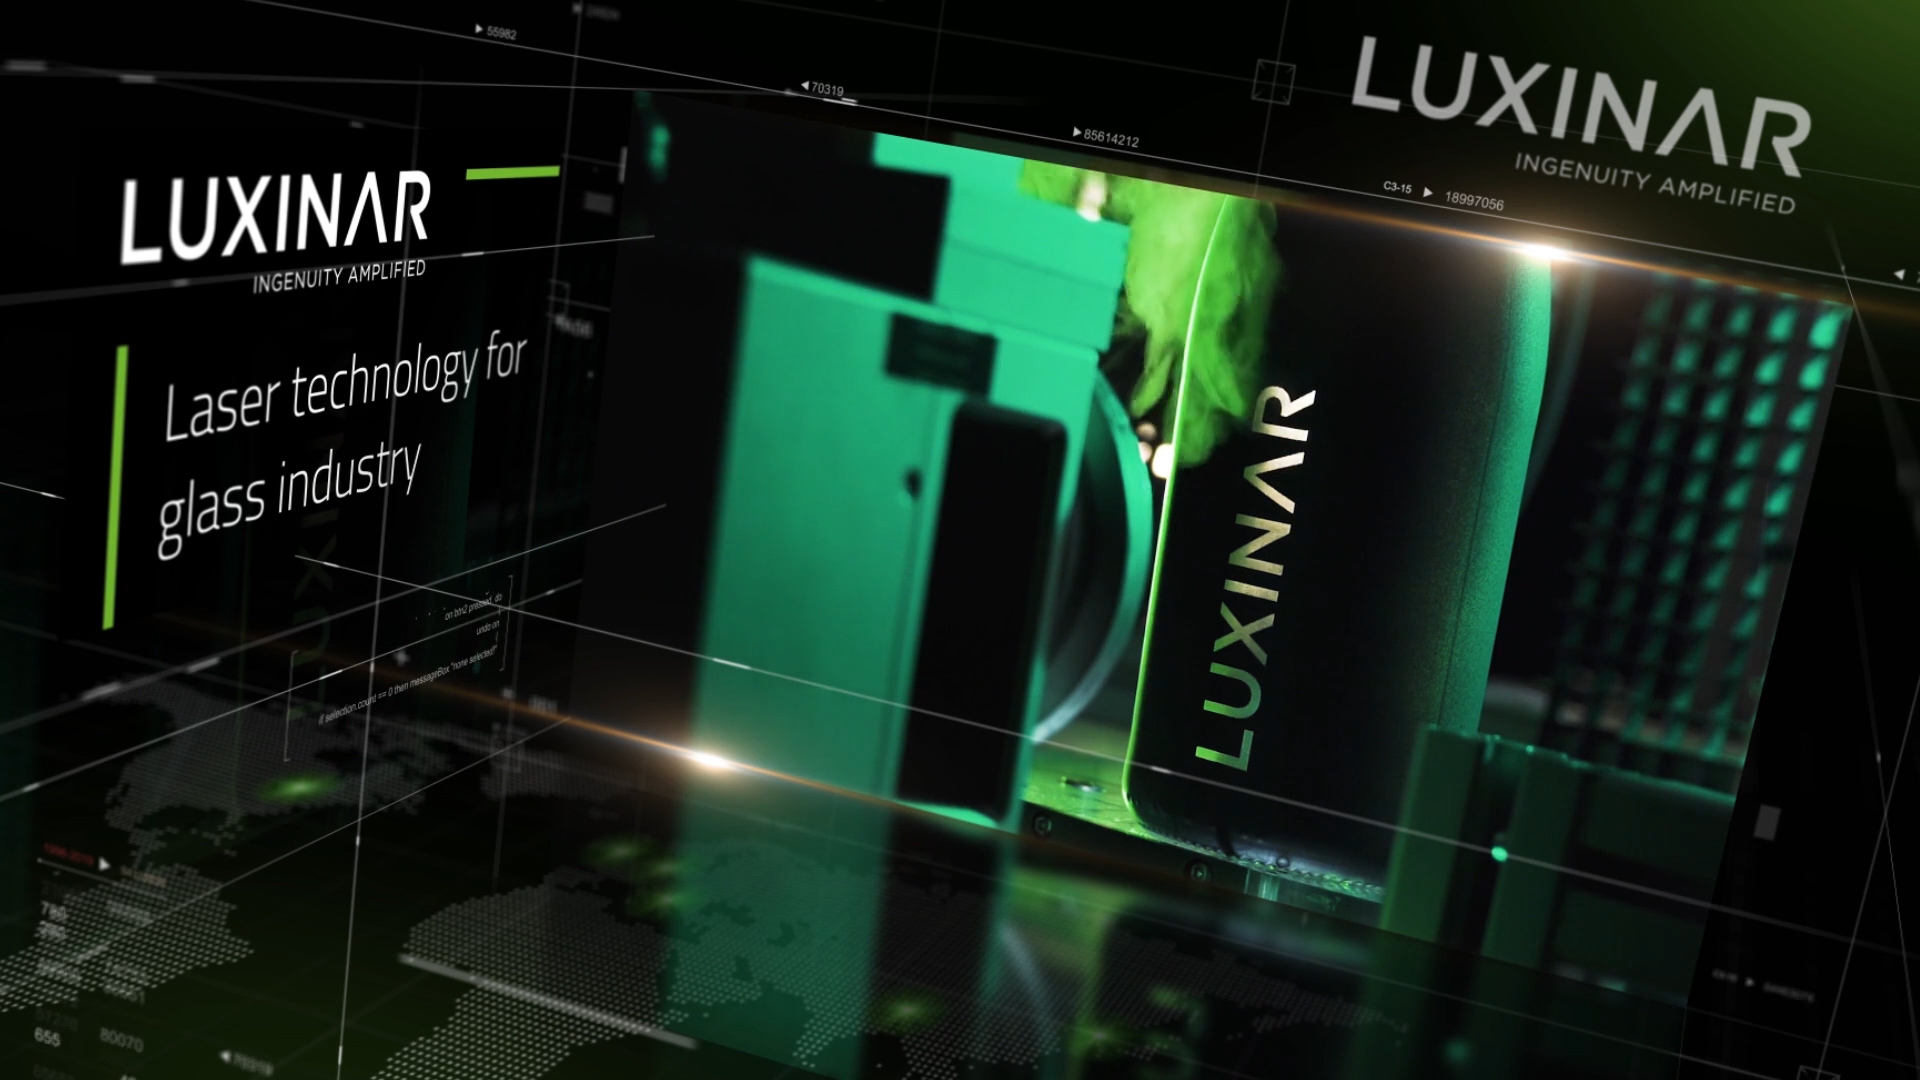 Luxinar laser technology for the glass industry